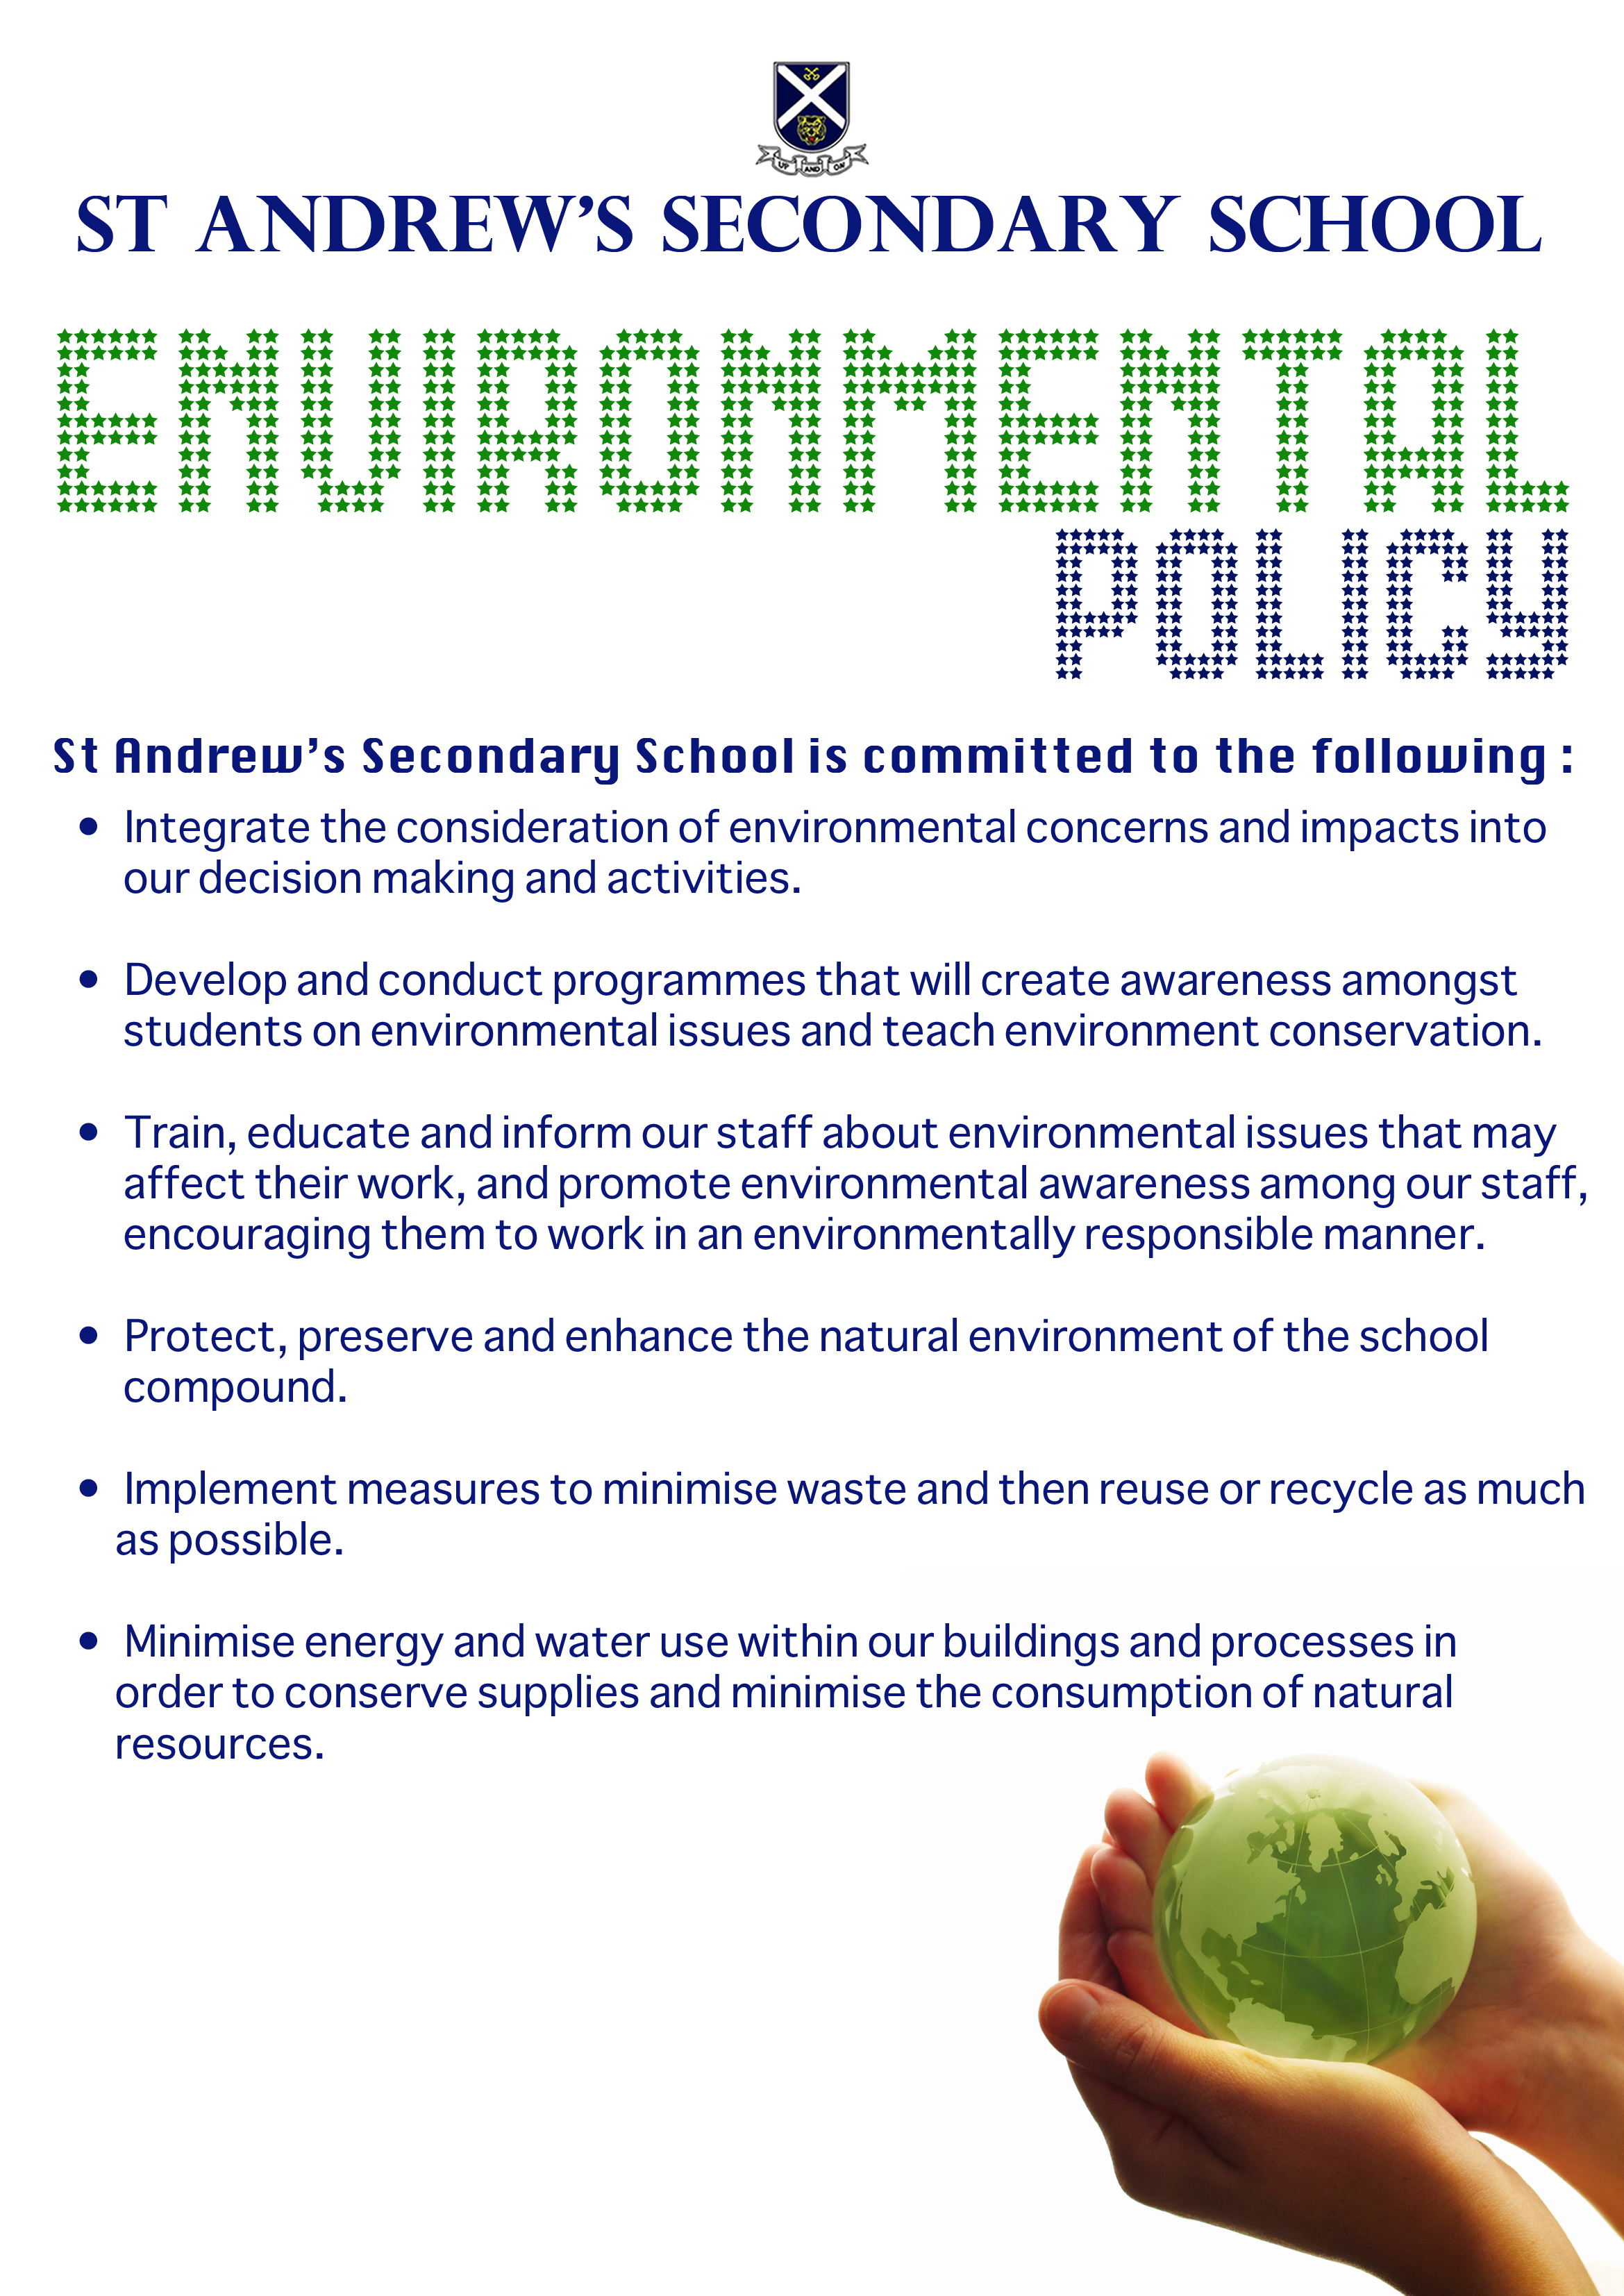 school environment policy poster 2014.jpg